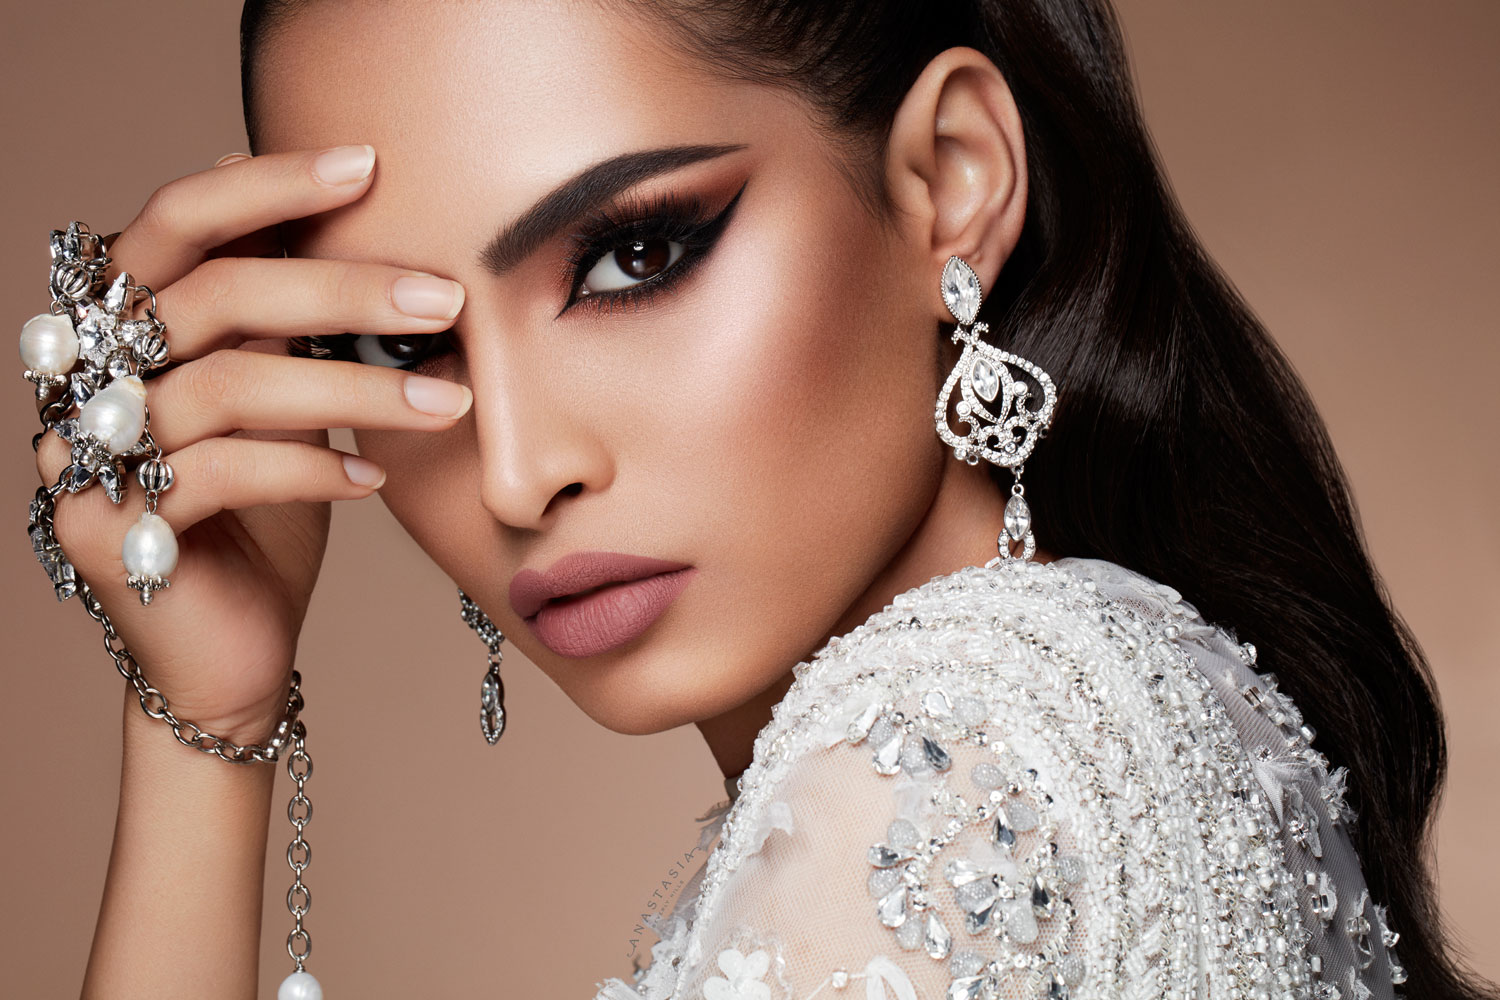 Anastasia Beverly Hills Launches First Bridal-Inspired